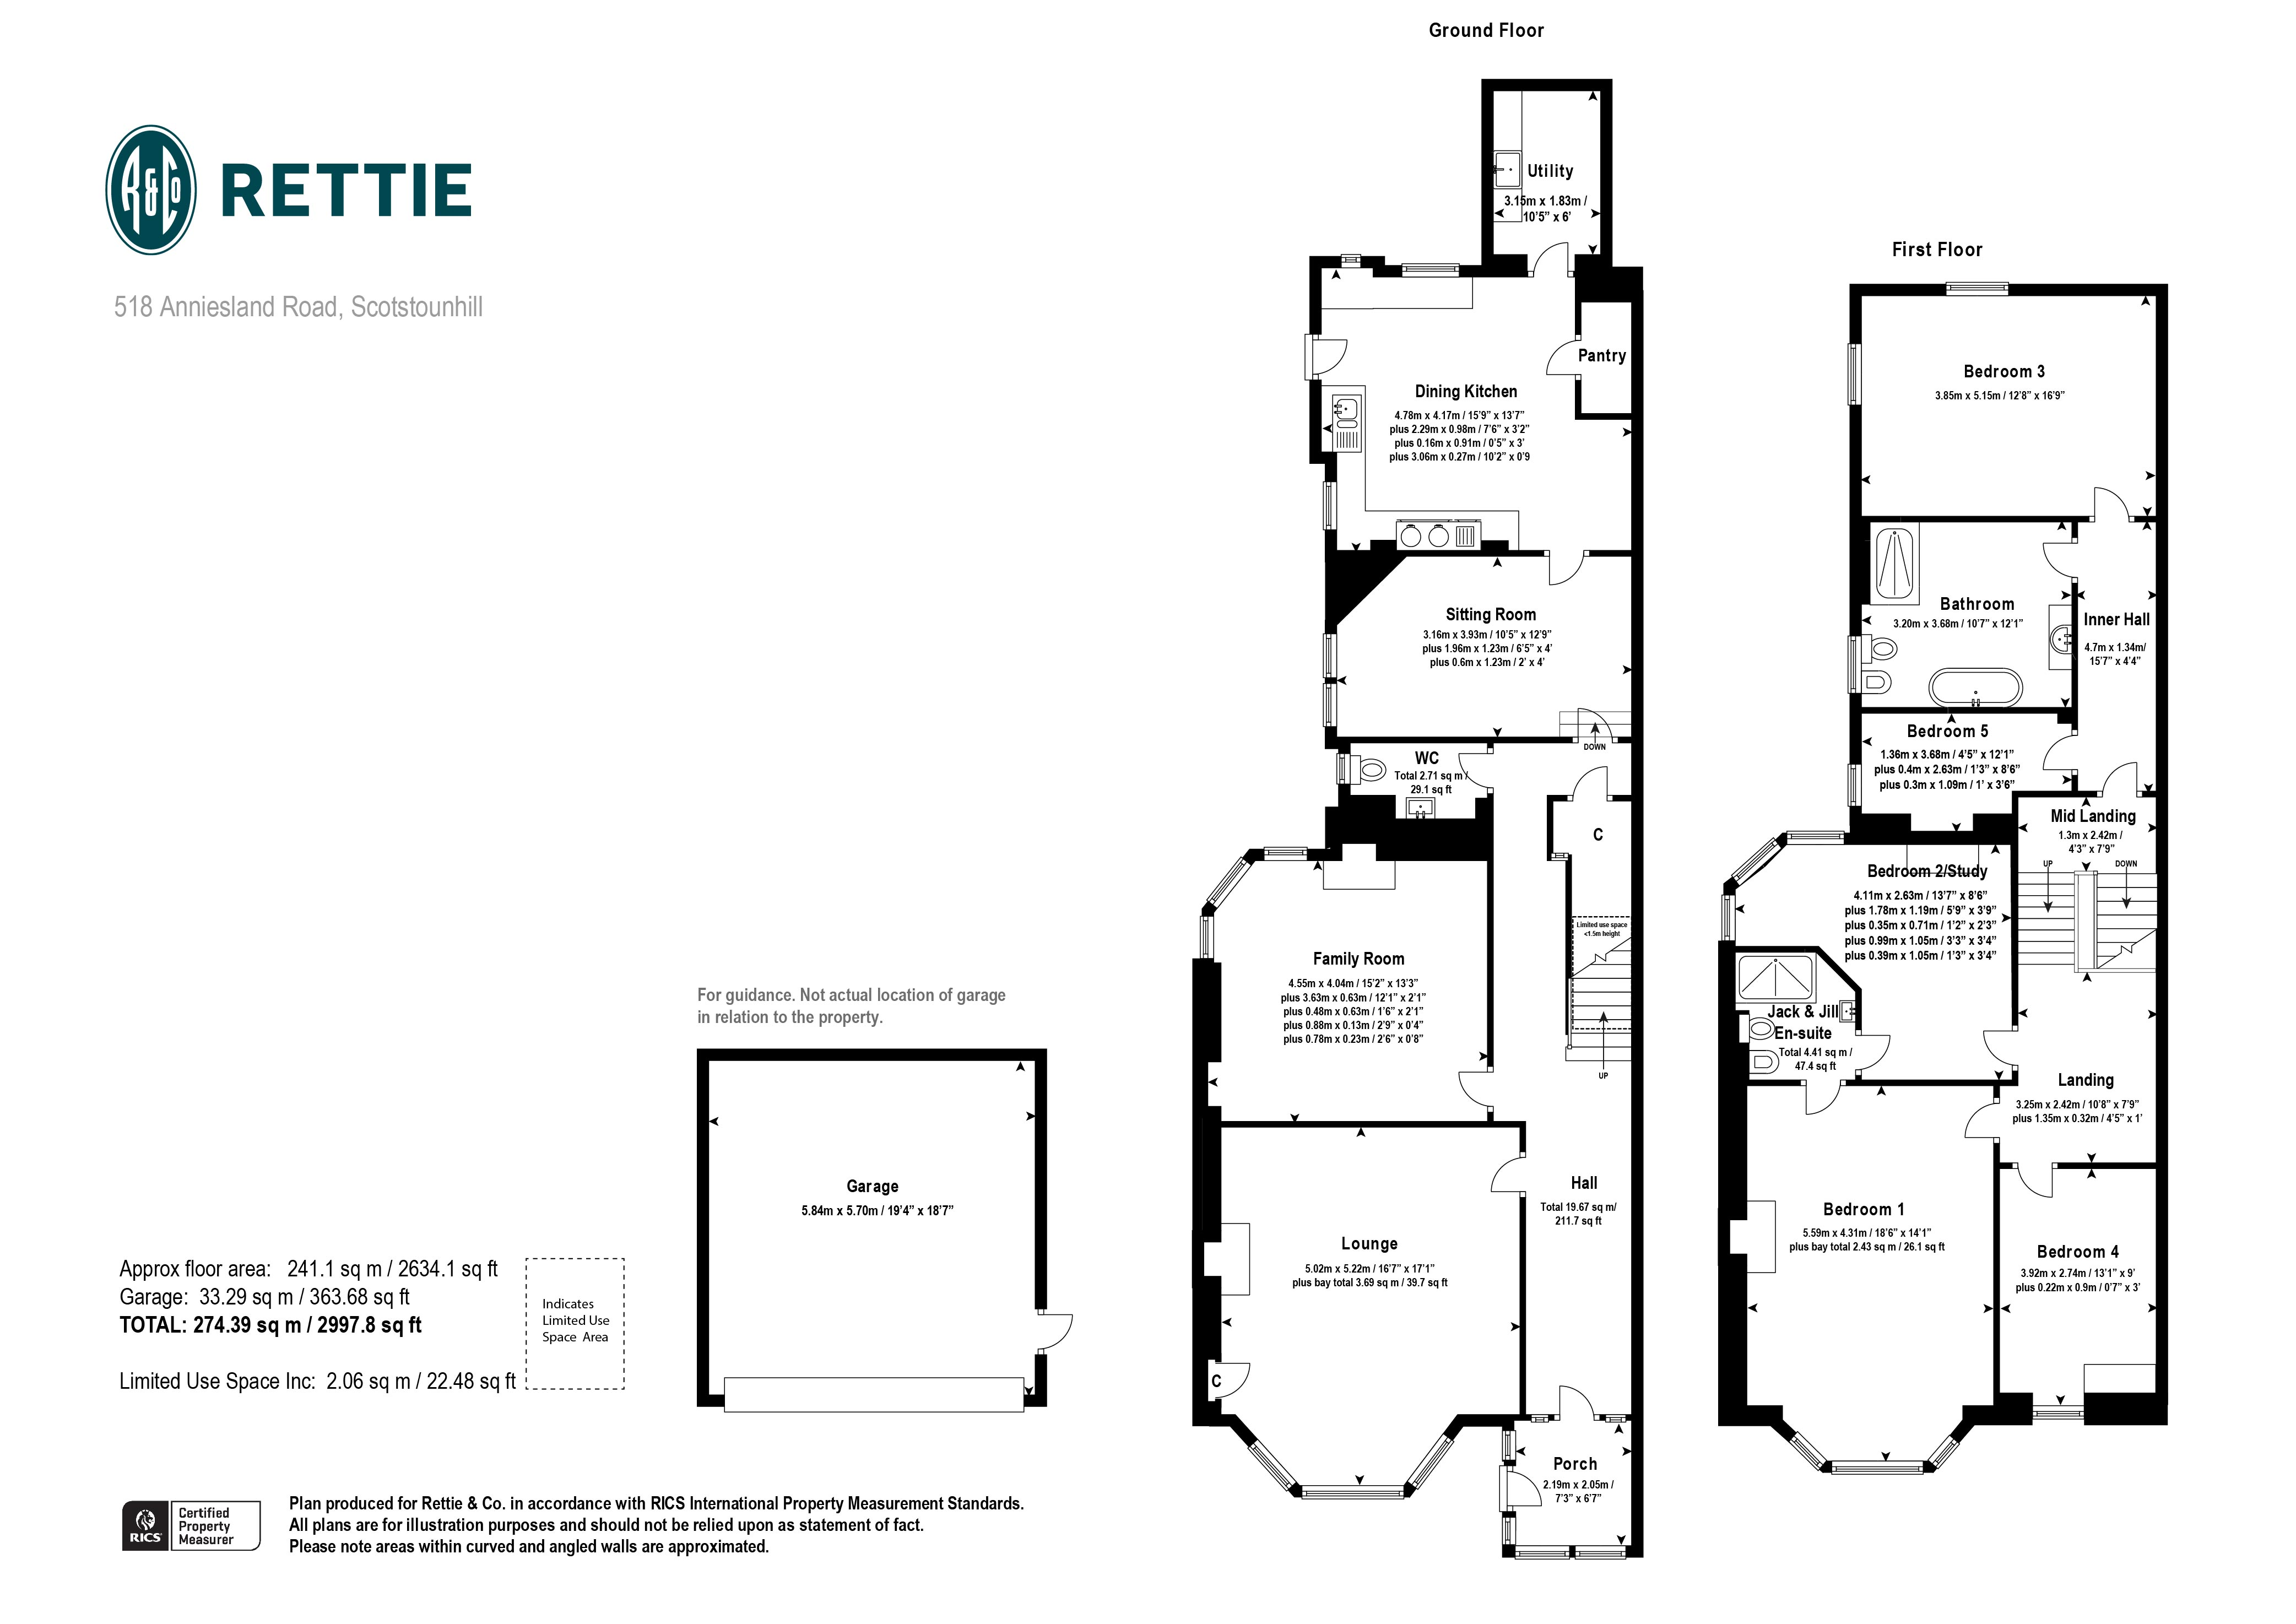 Floorplans for Anniesland Road, Scotstounhill, Glasgow, G13